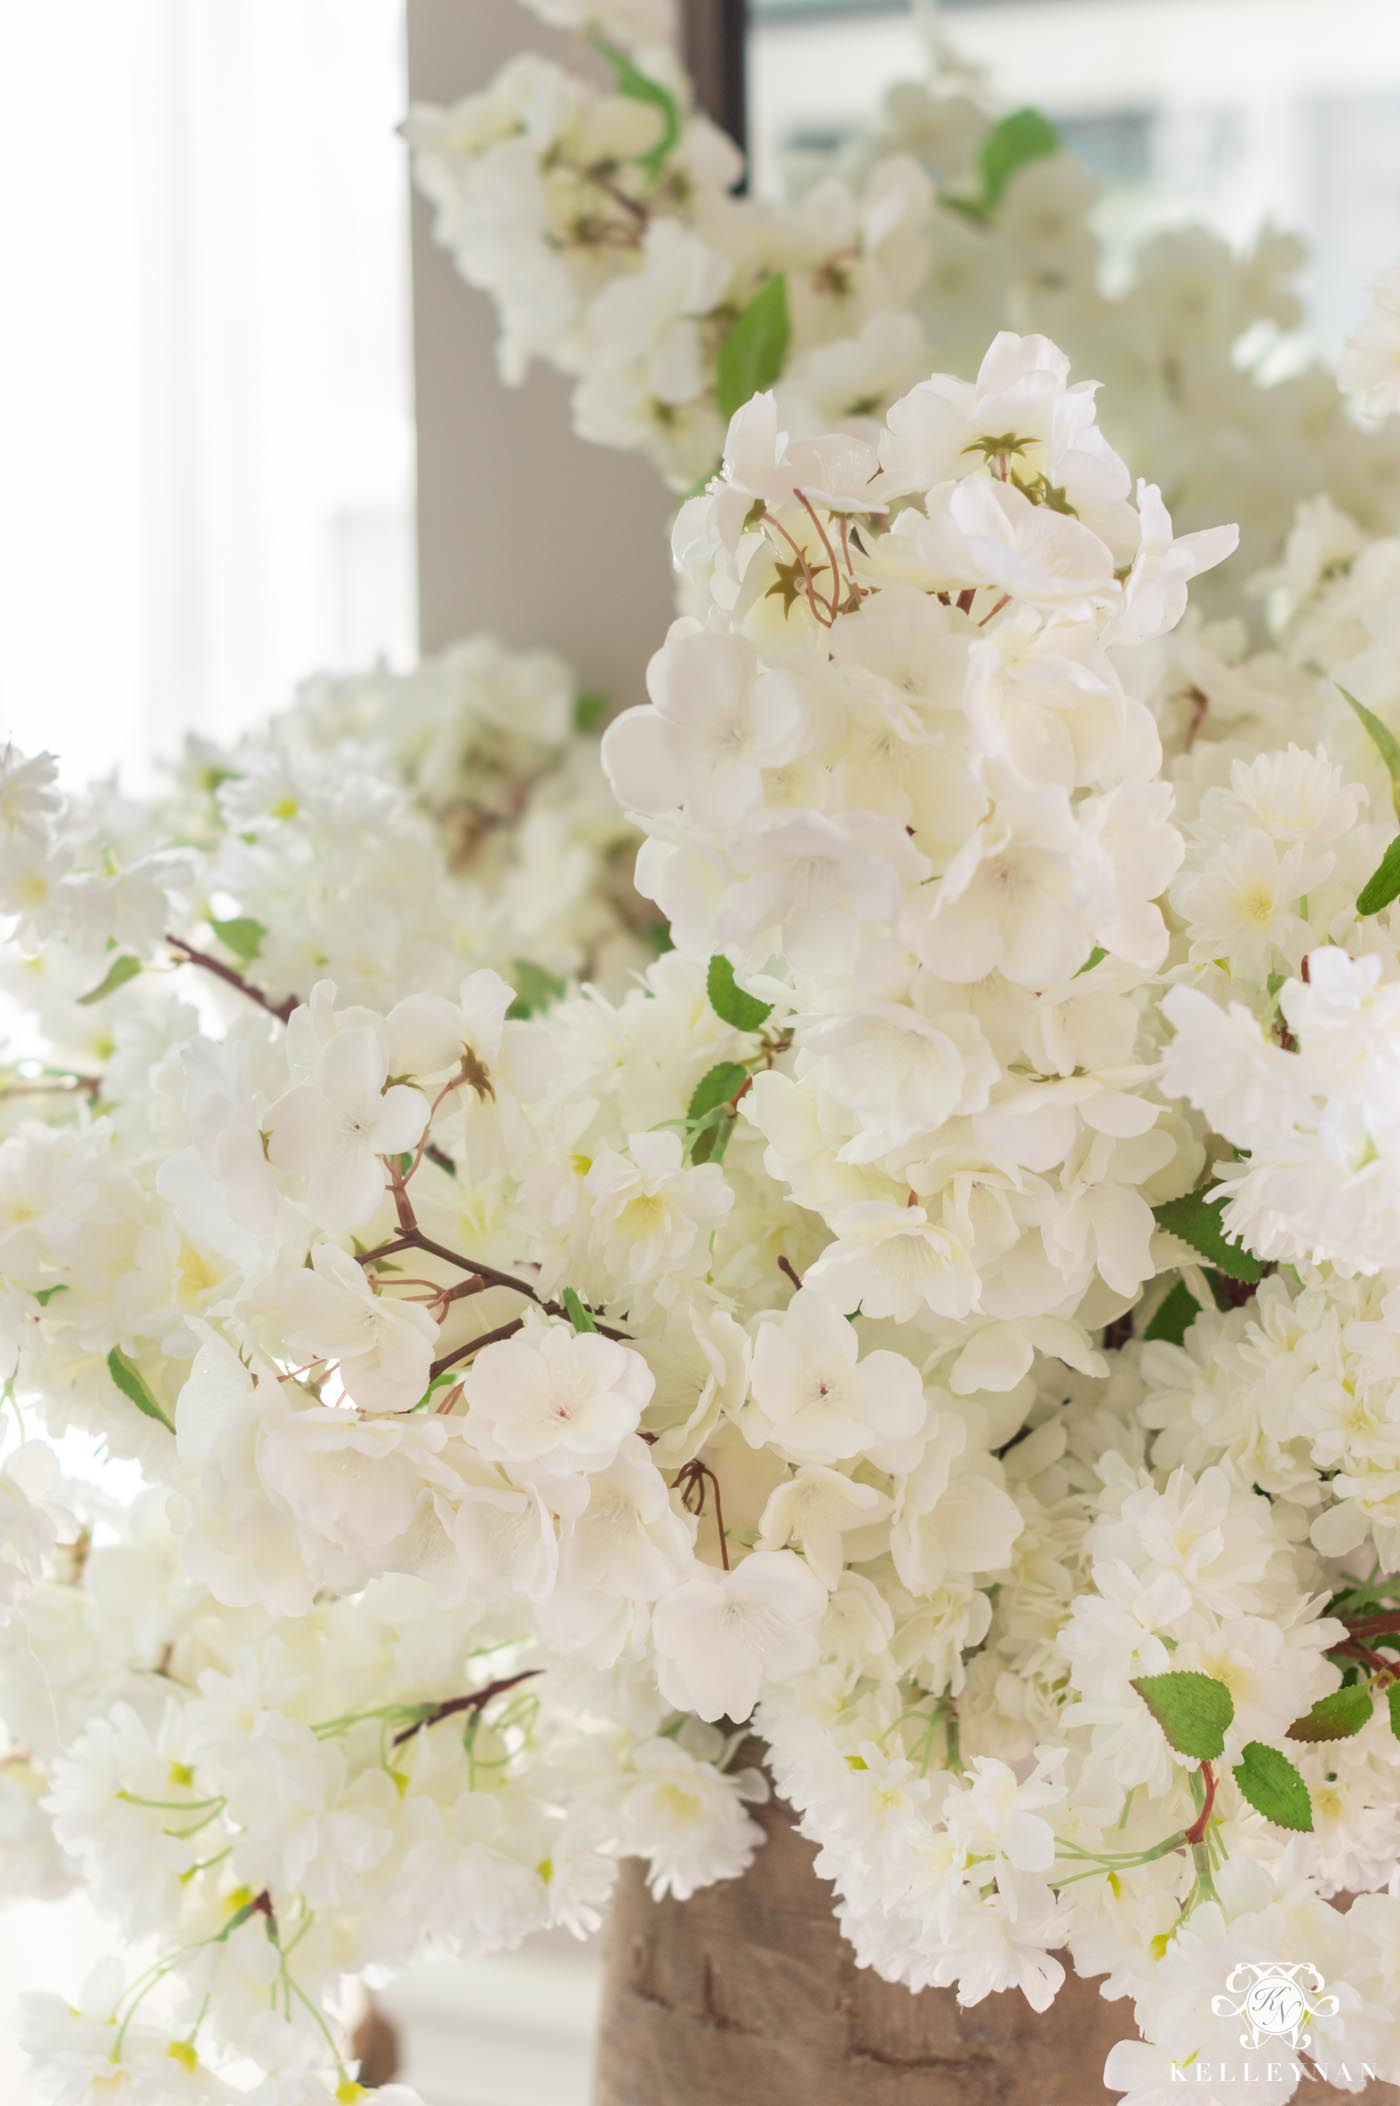 Best Faux Flowers and the Prettiest Cherry Blossom Stems